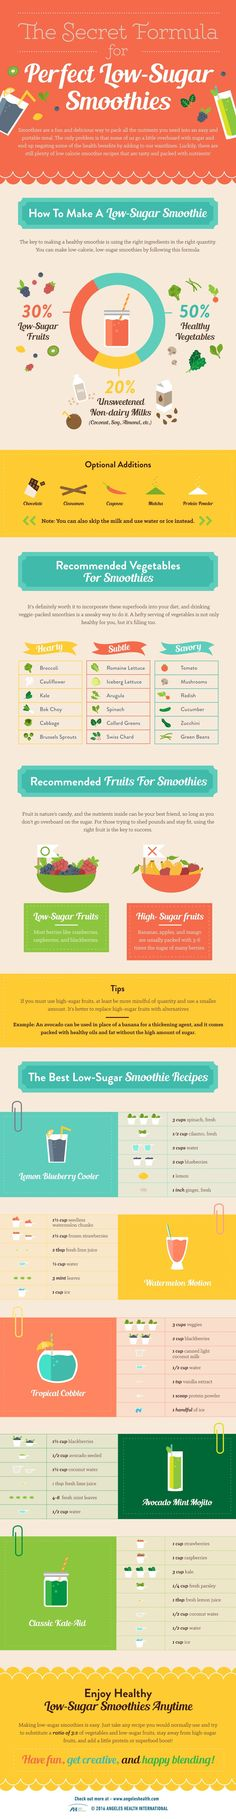 Smoothies are here to stay--so how can you drink them without all the added sugar gunking up your supposedly nutritious drink? Try these tips for making smoothies healthy! You will have a favorite go-to recipe in no time!